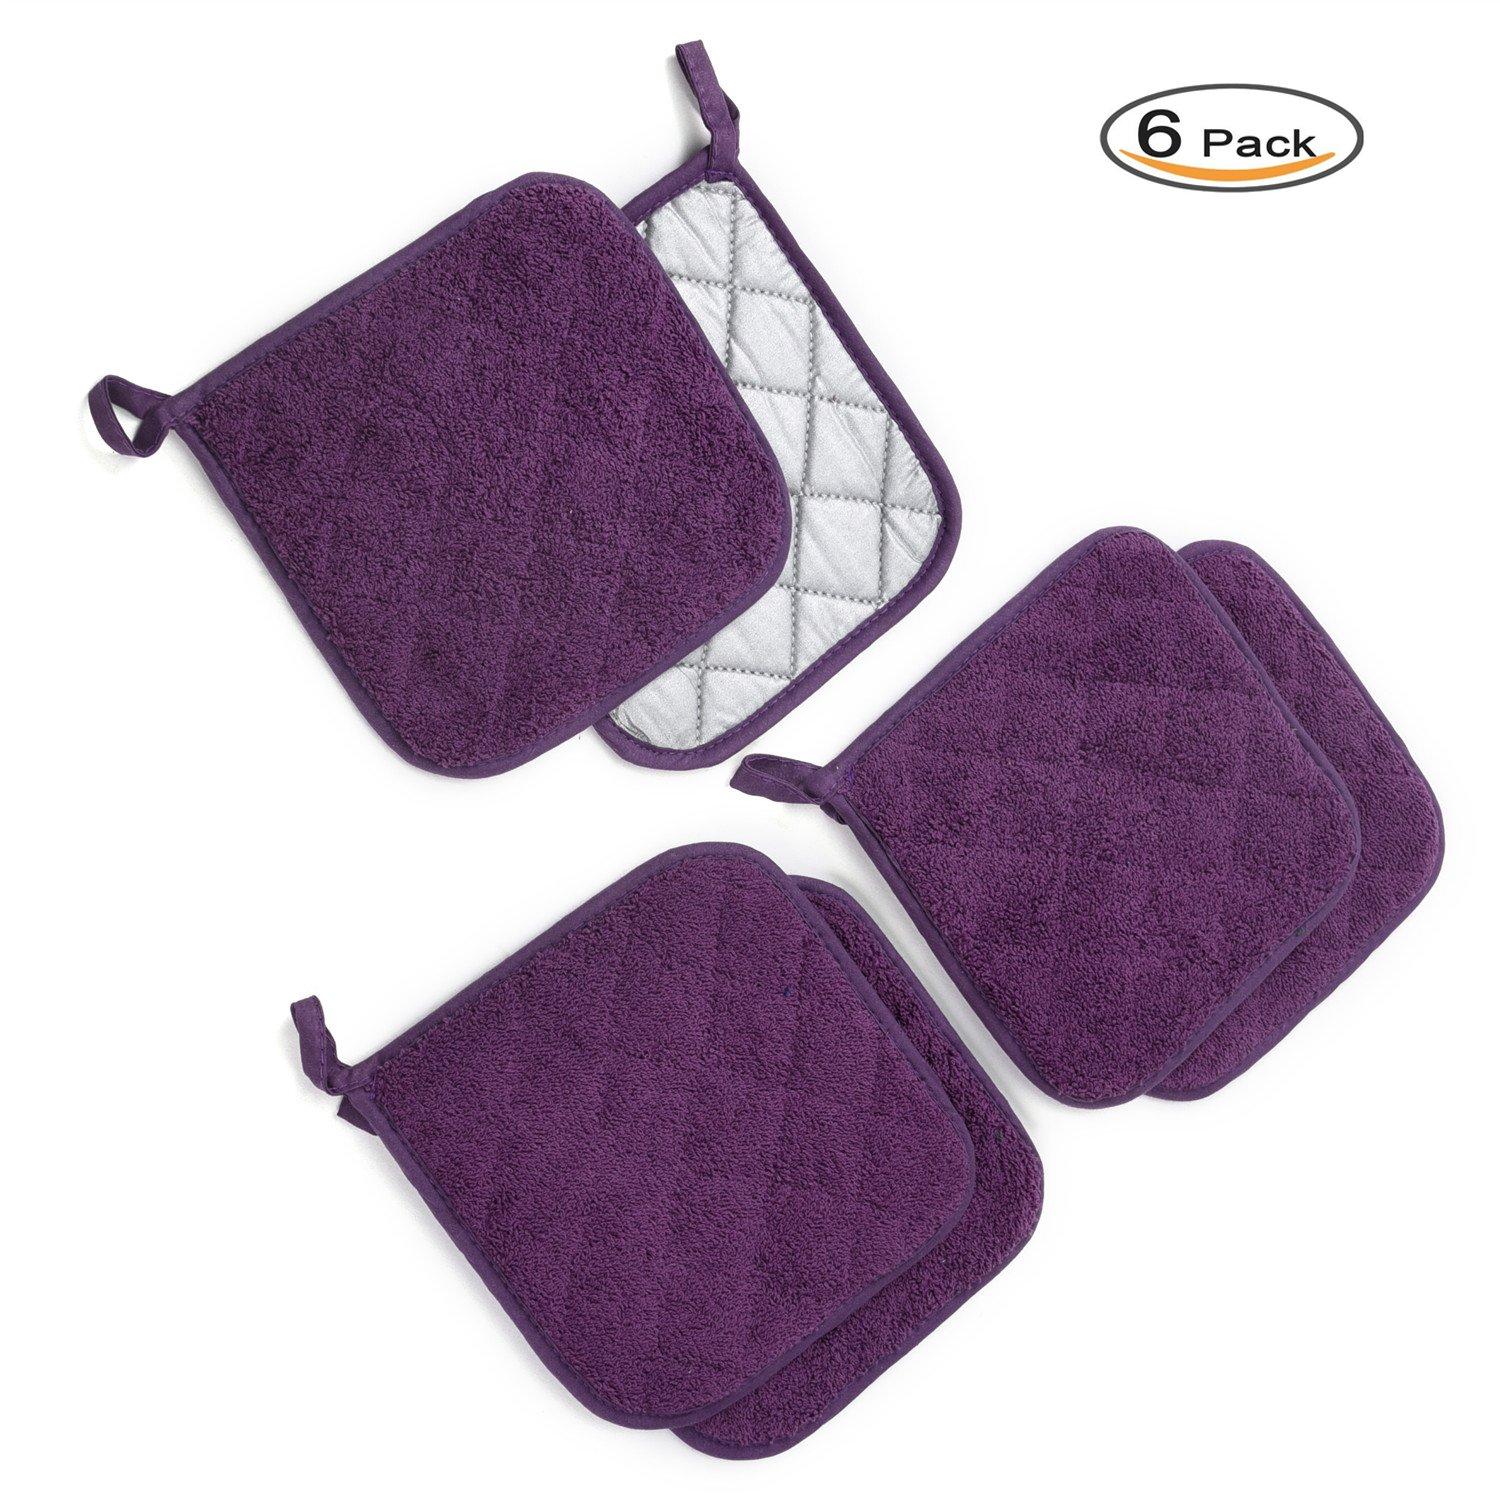 Kitchen Potholders Set (6 Pack) Heat Resistant Coaster 100% Pure Cotton Kitchen Everyday Potholders- 7''X7'' For Cooking And Baking by Jennice House (Purple)